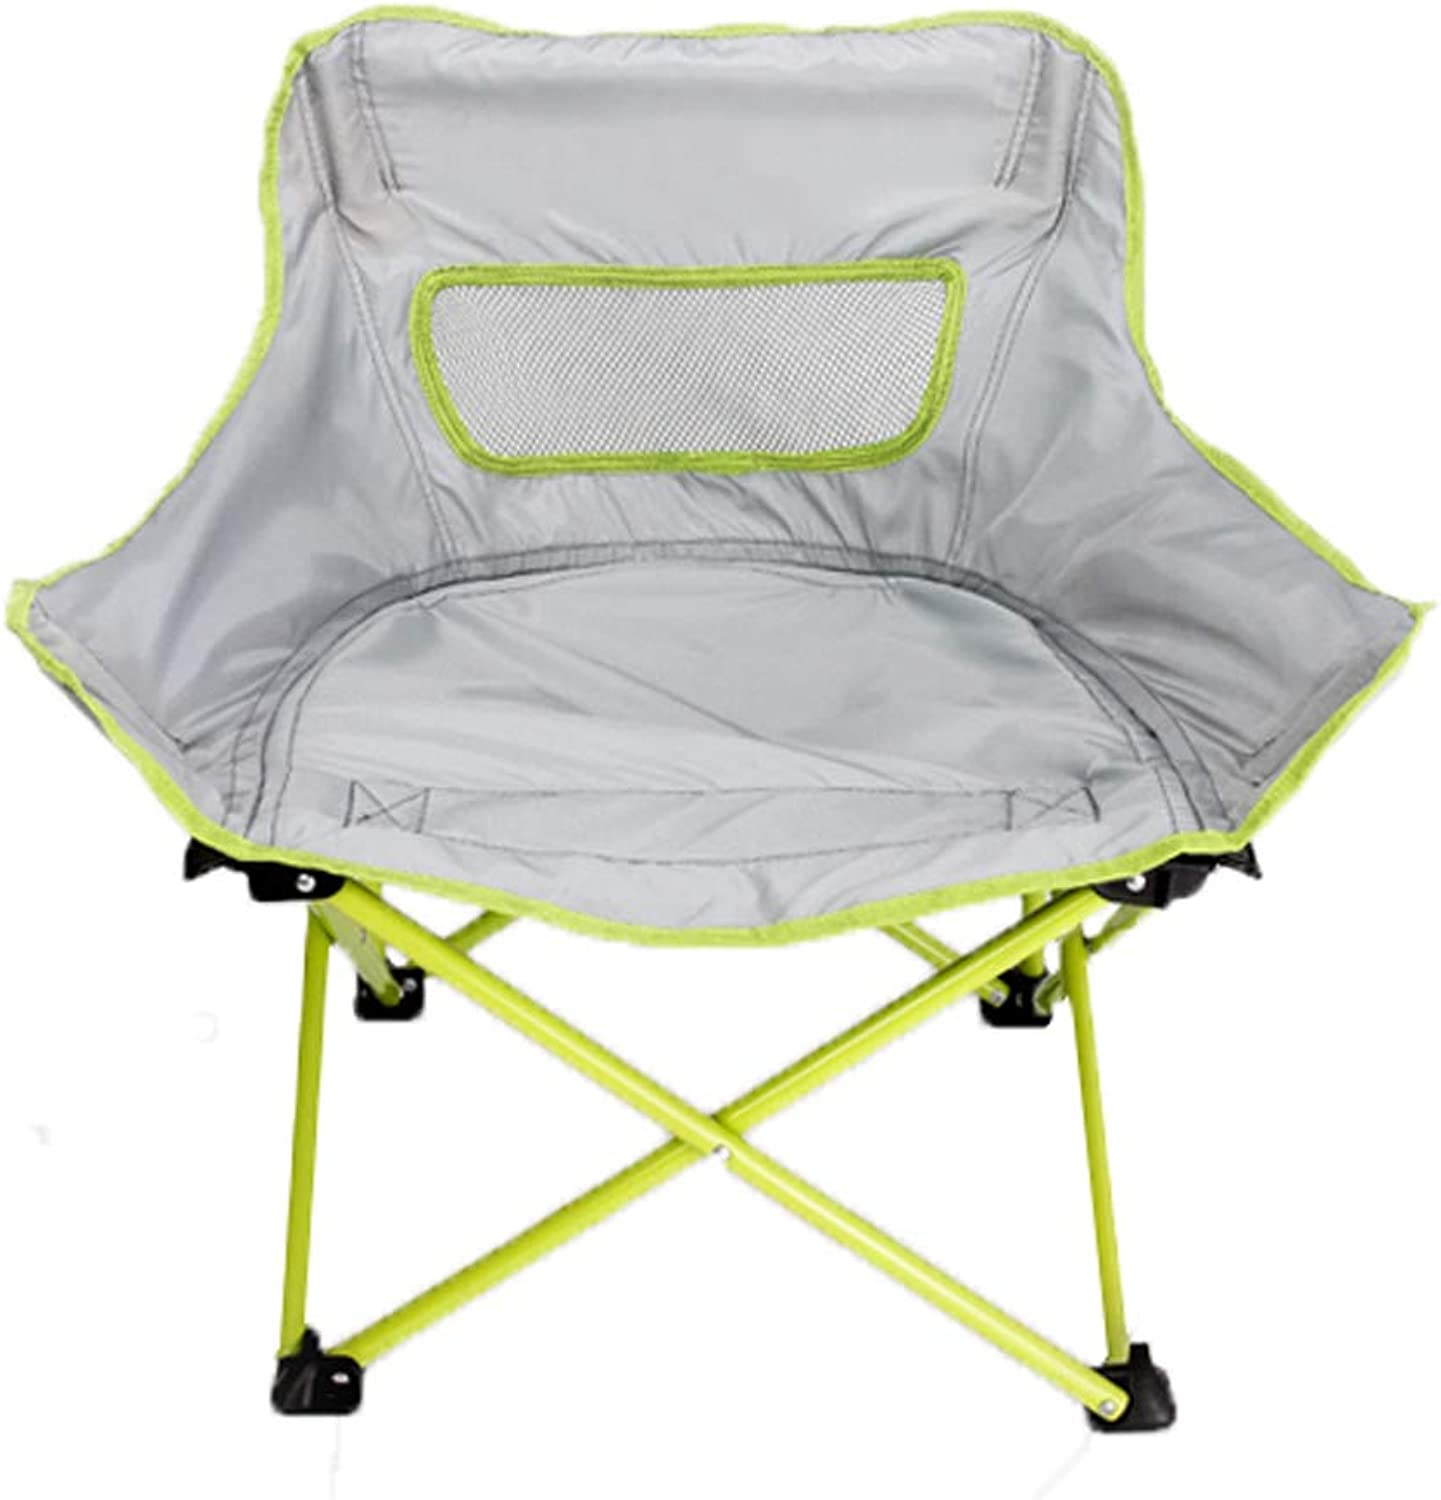 LITING Folding Stool Folding Chair Outdoor Family Indoor Garden Camping Convenient to Carry